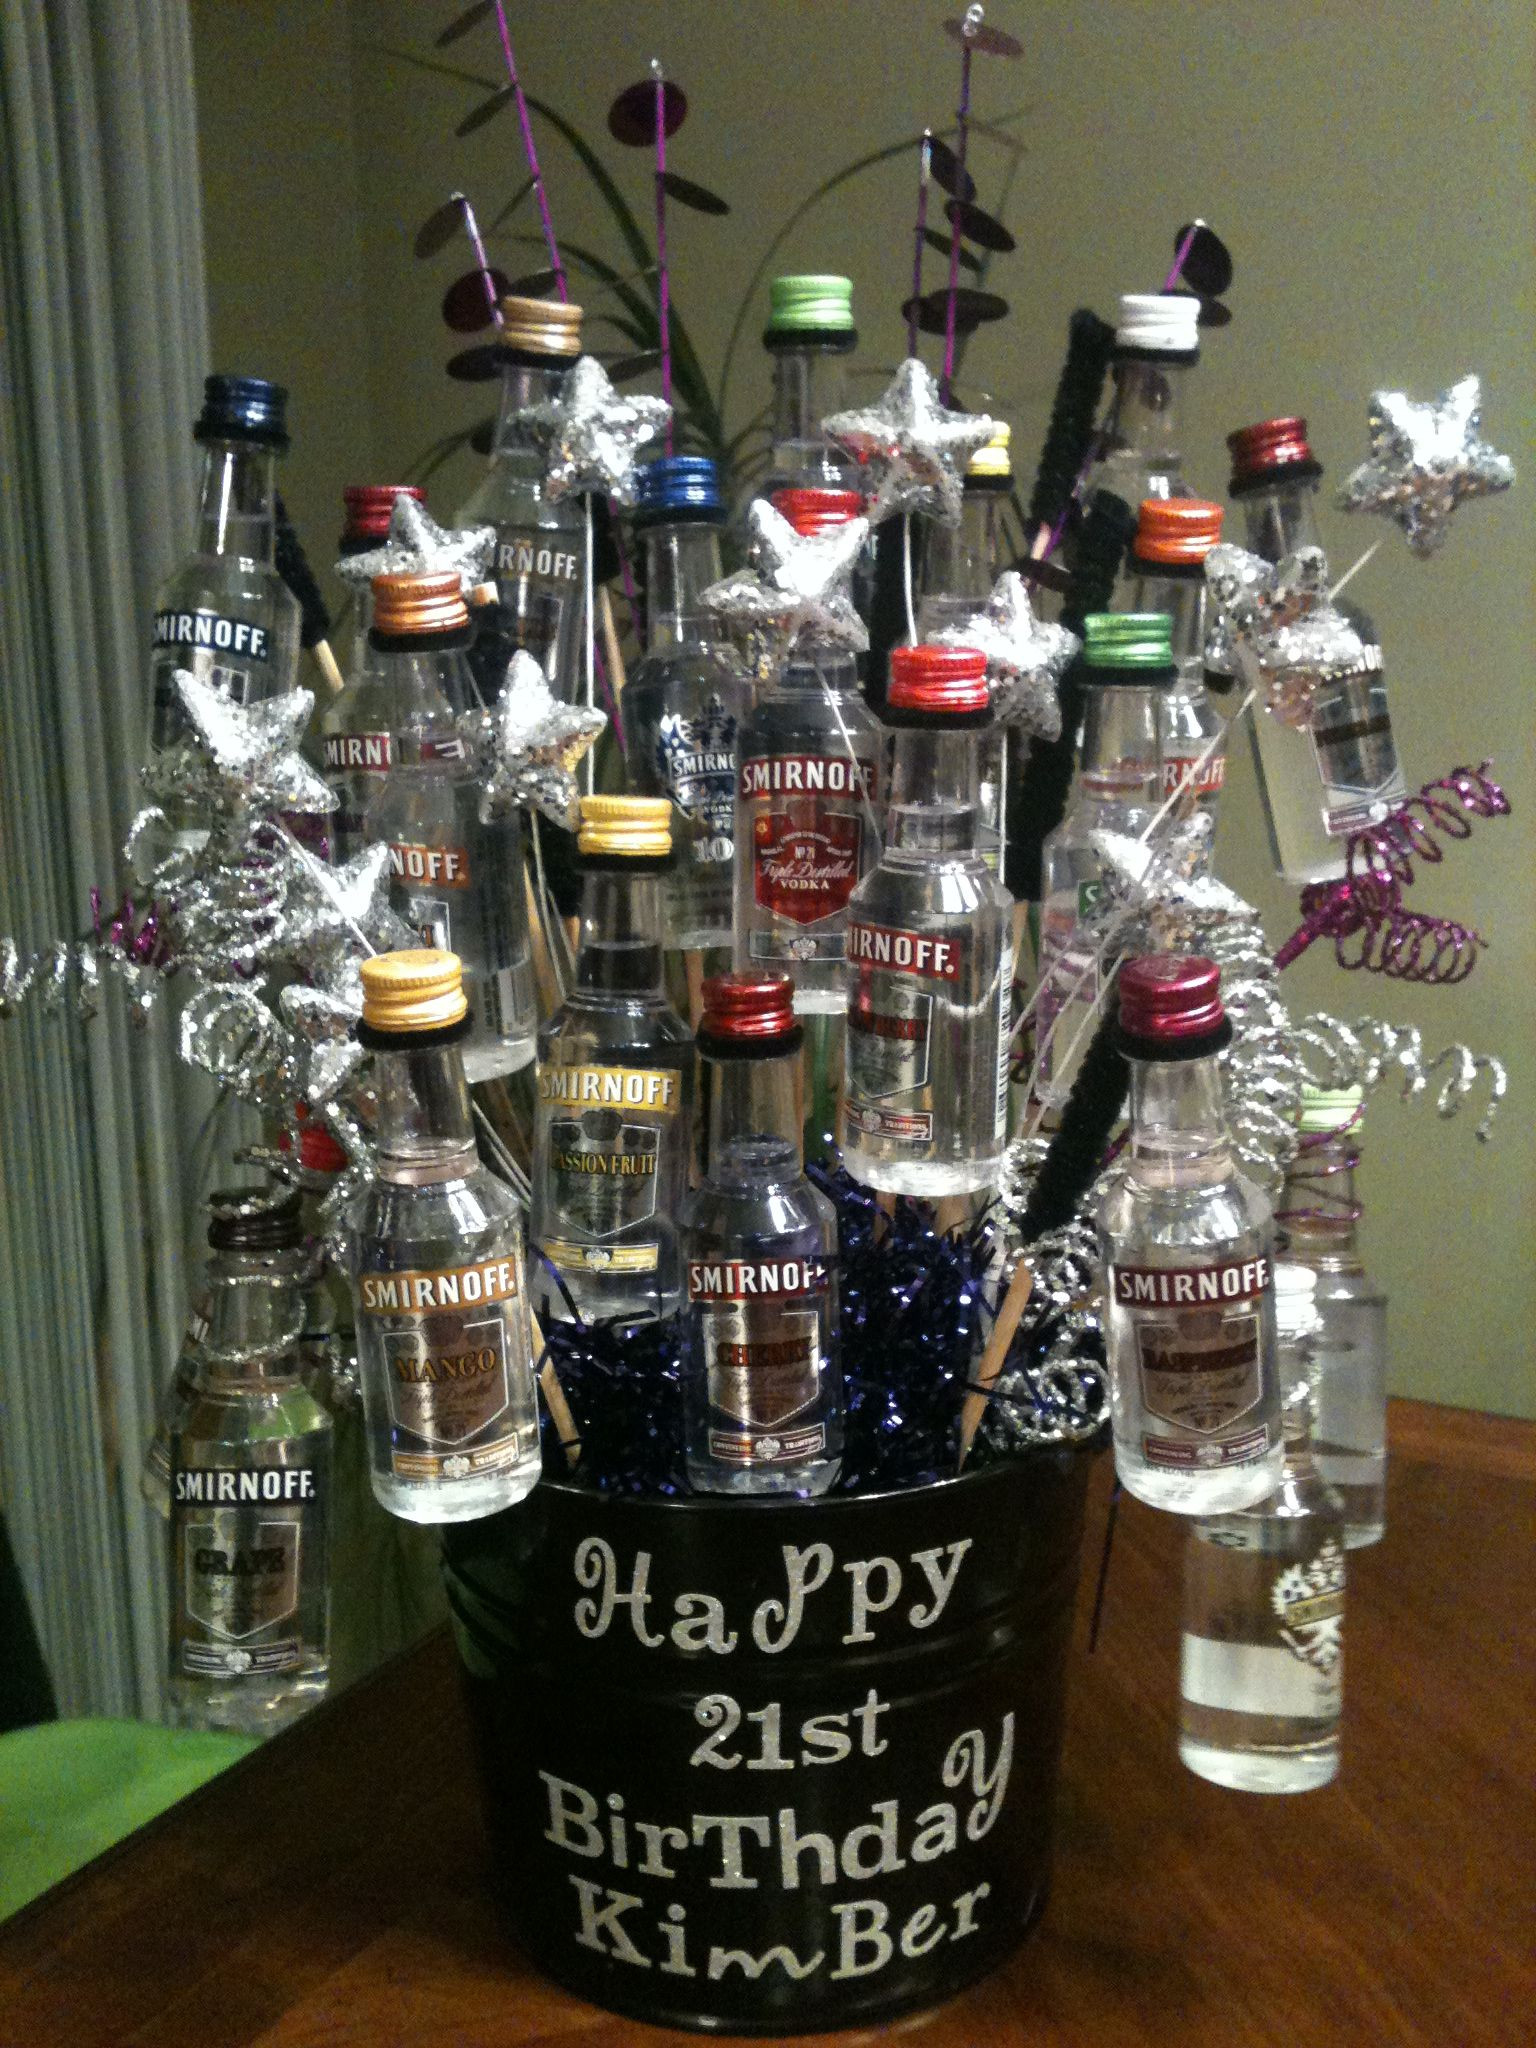 Best ideas about DIY Alcohol Gift Baskets . Save or Pin Great 21st Birthday shot basket Now.